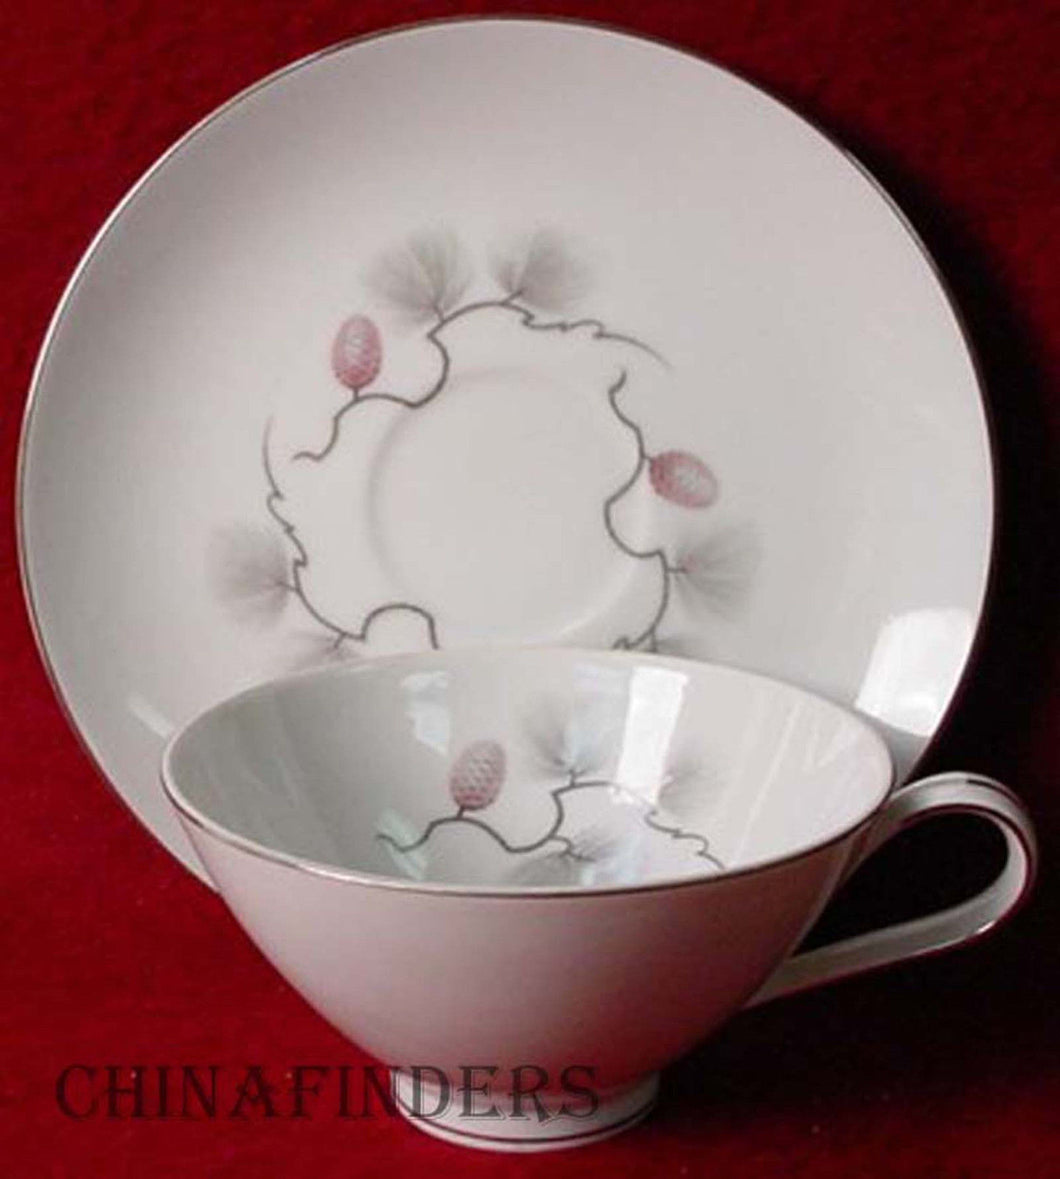 NARUMI Japan china PINECREST 5099 pttrn CUP & SAUCER